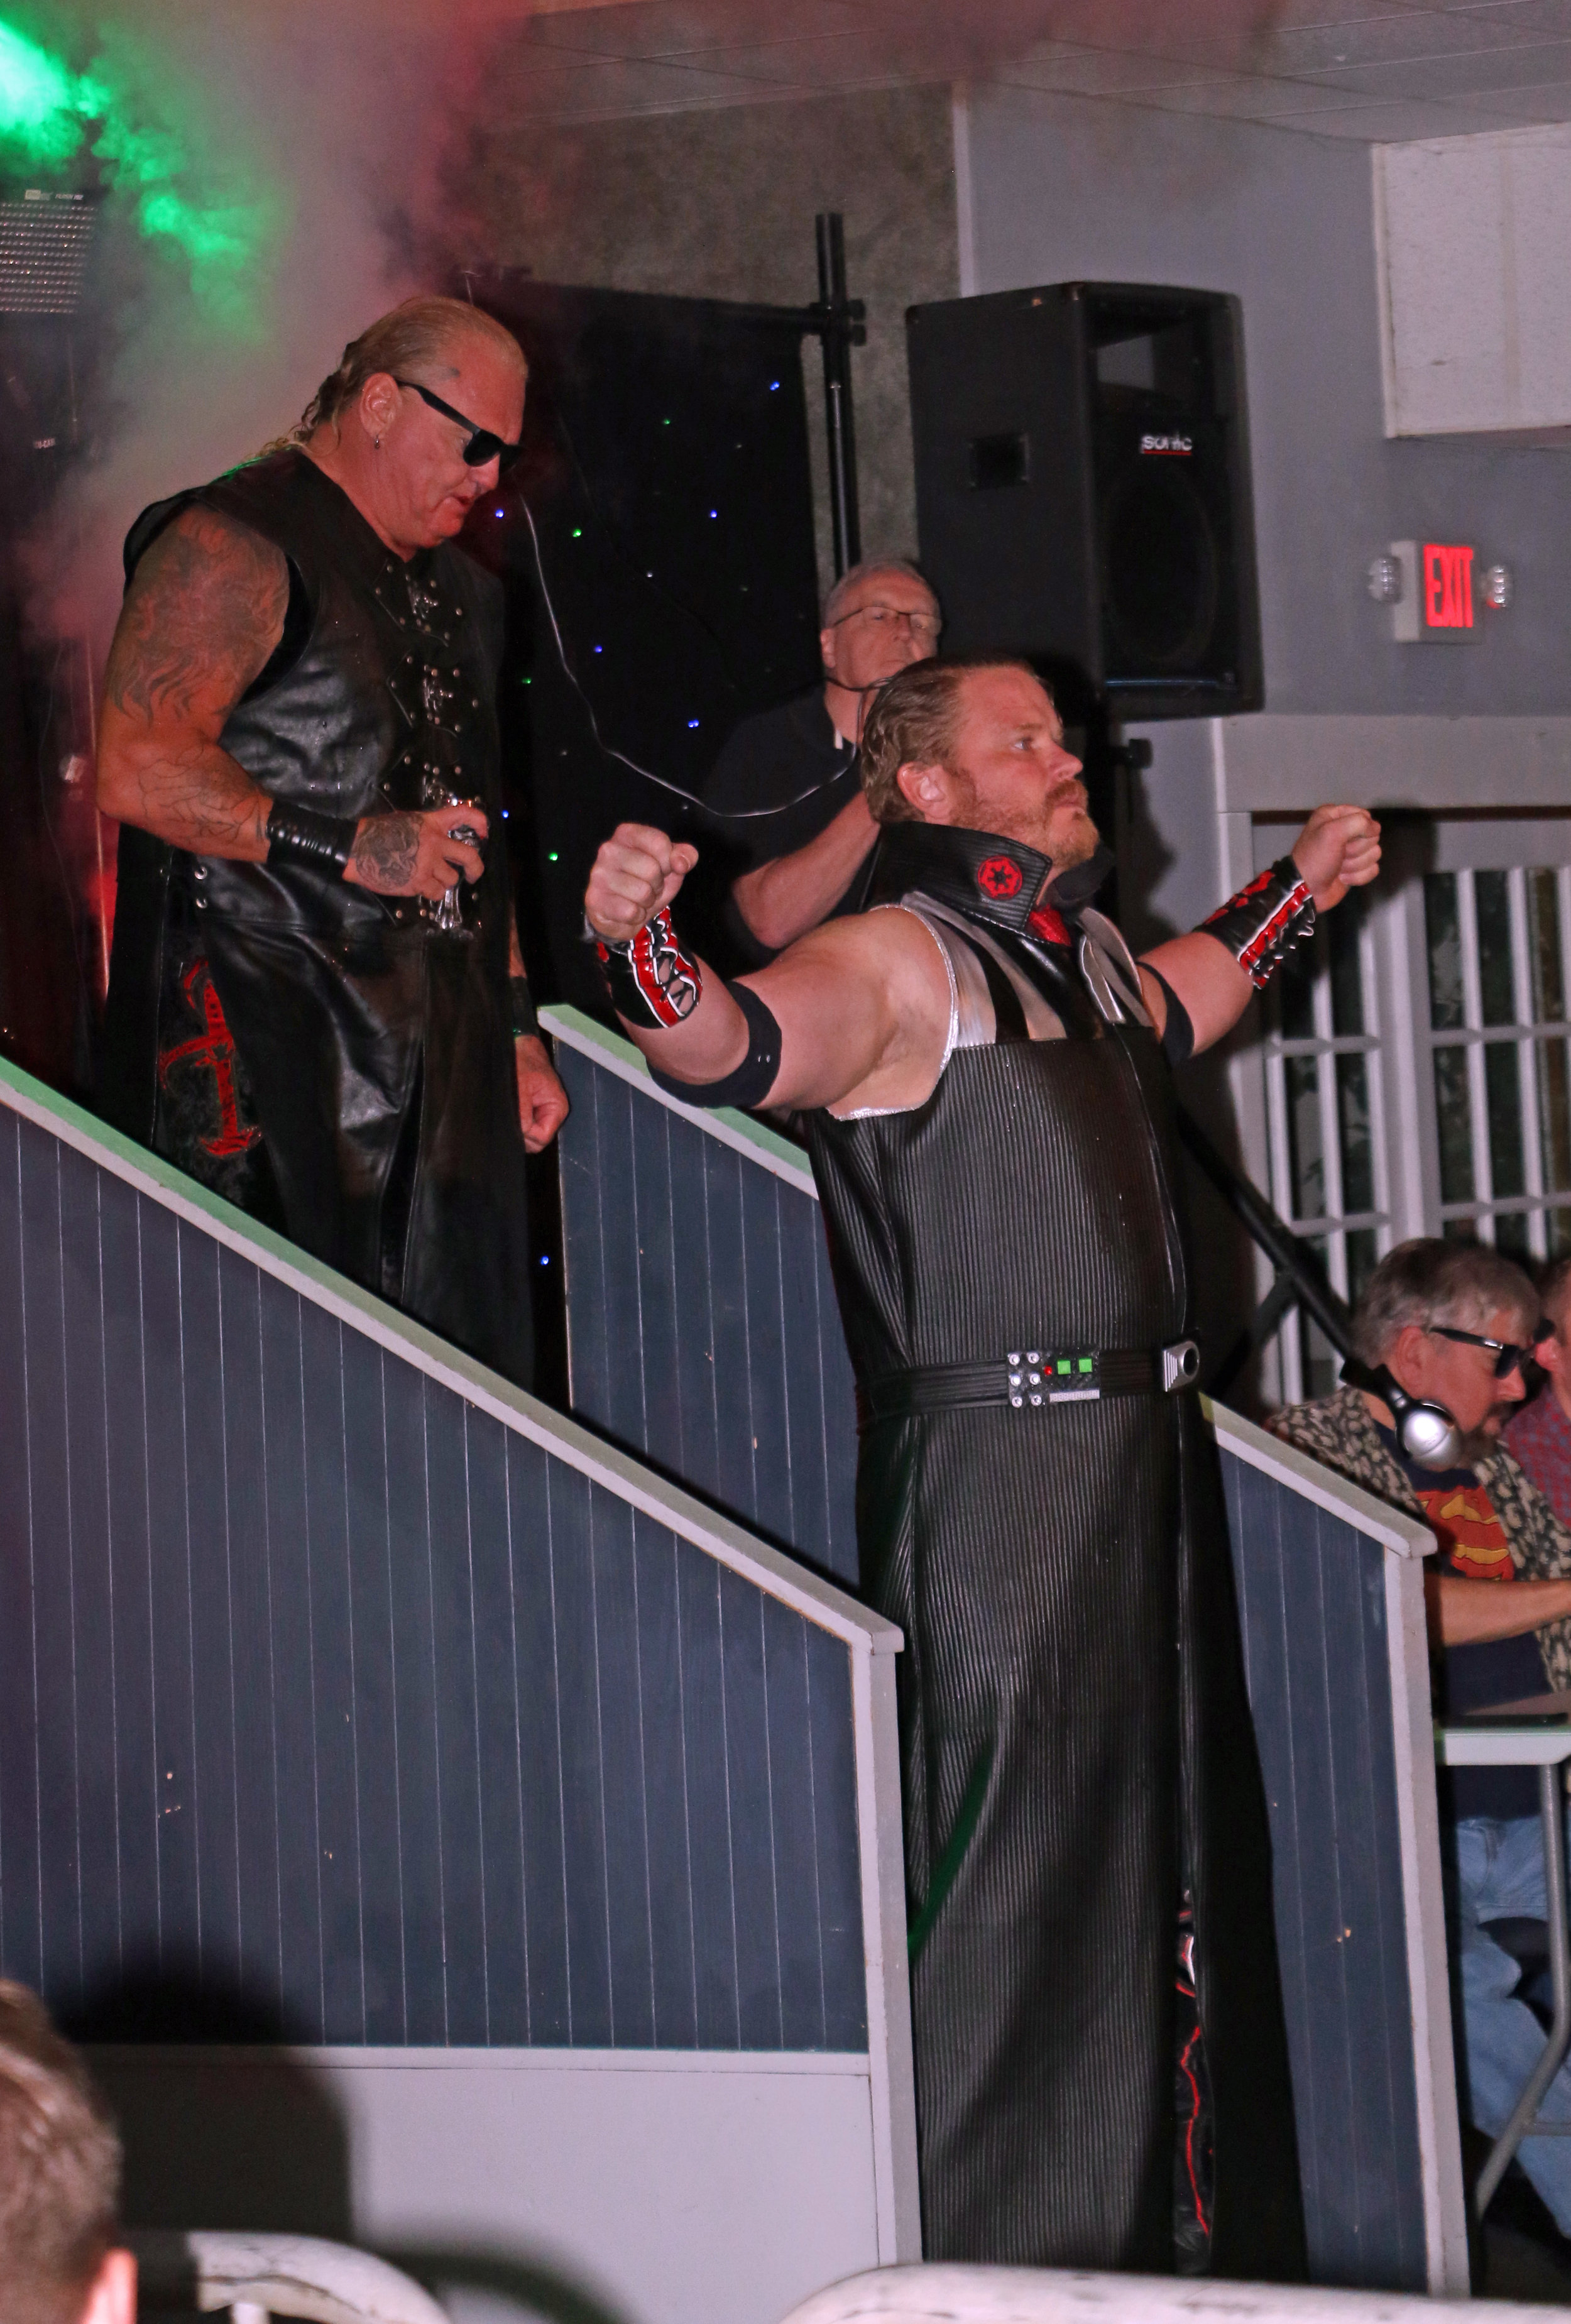 The Bite Club, Kevin Thorn, right, and Gangrel, enter the arena for the main event.